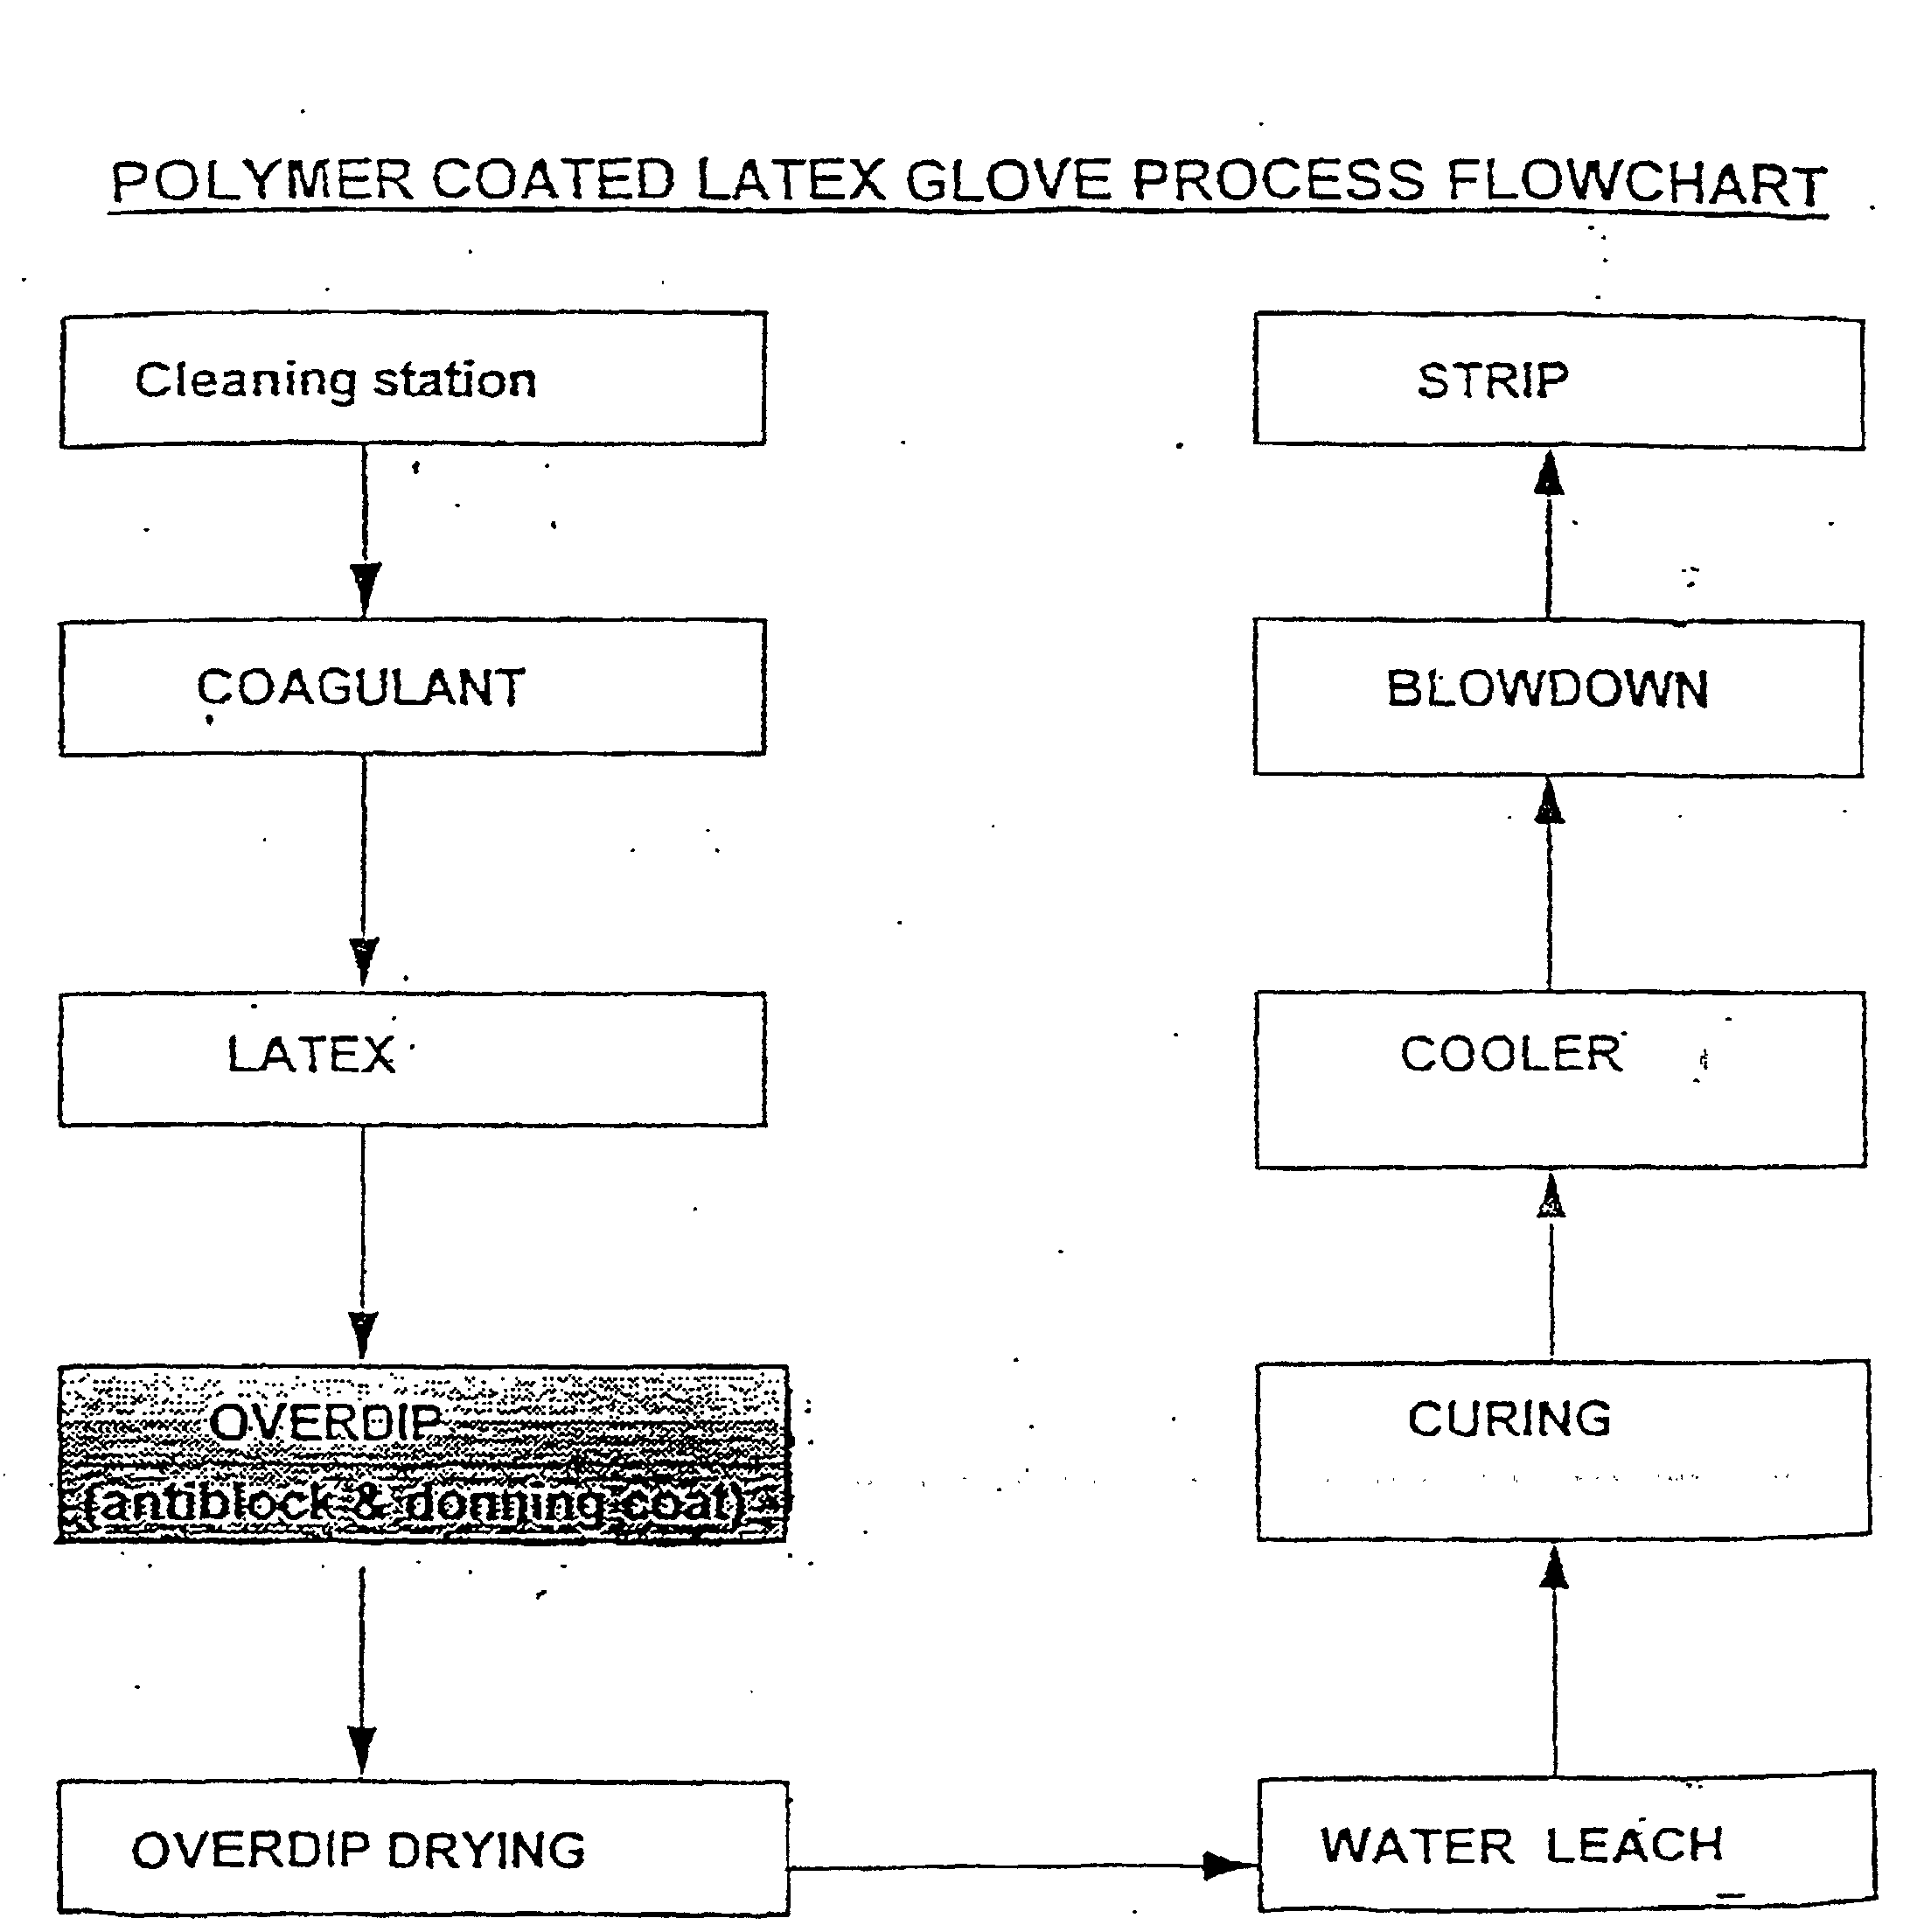 Ep0906731b1 powder free medical glove and manufacture thereof as illustrated in the flow chart 1 firstly a clean glove form which is the mould is immersed into a coagulant solution the solution contains the latex nvjuhfo Images